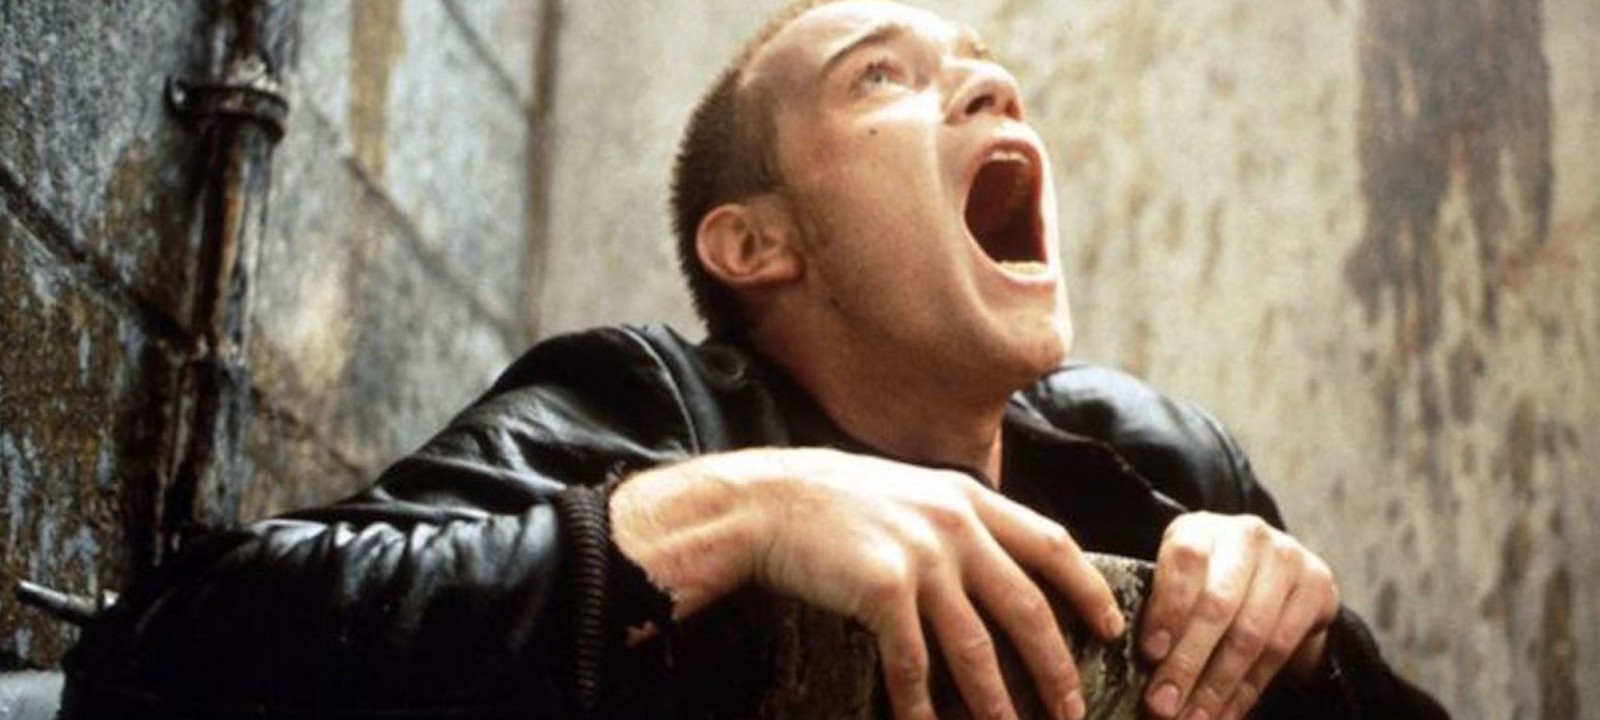 Ewan McGregor as Renton in 'Trainspotting'